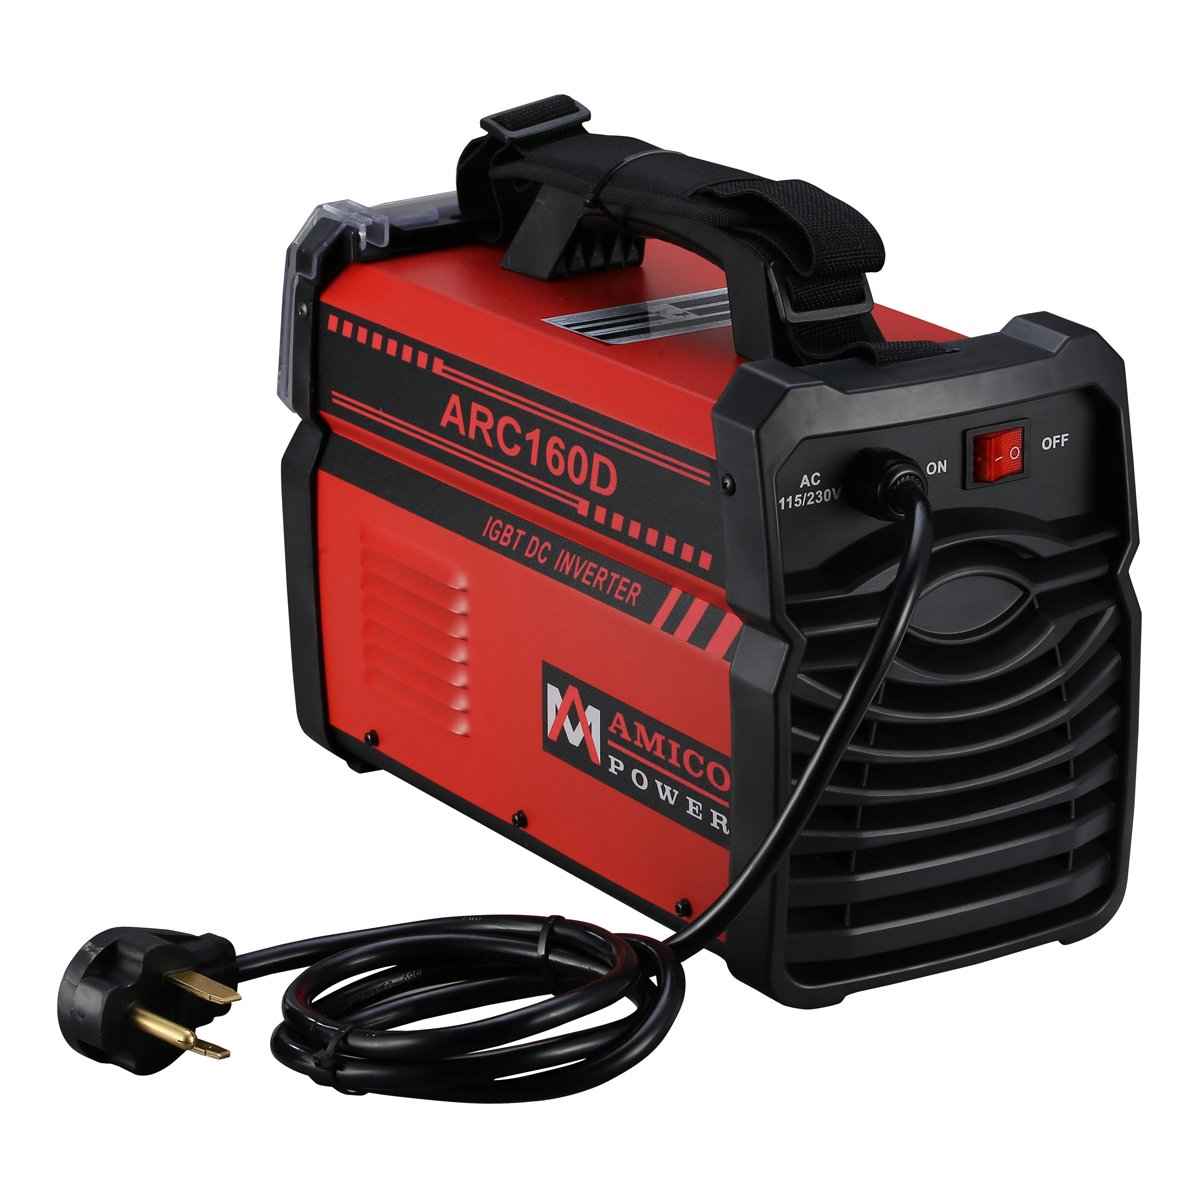 amico stick welder review